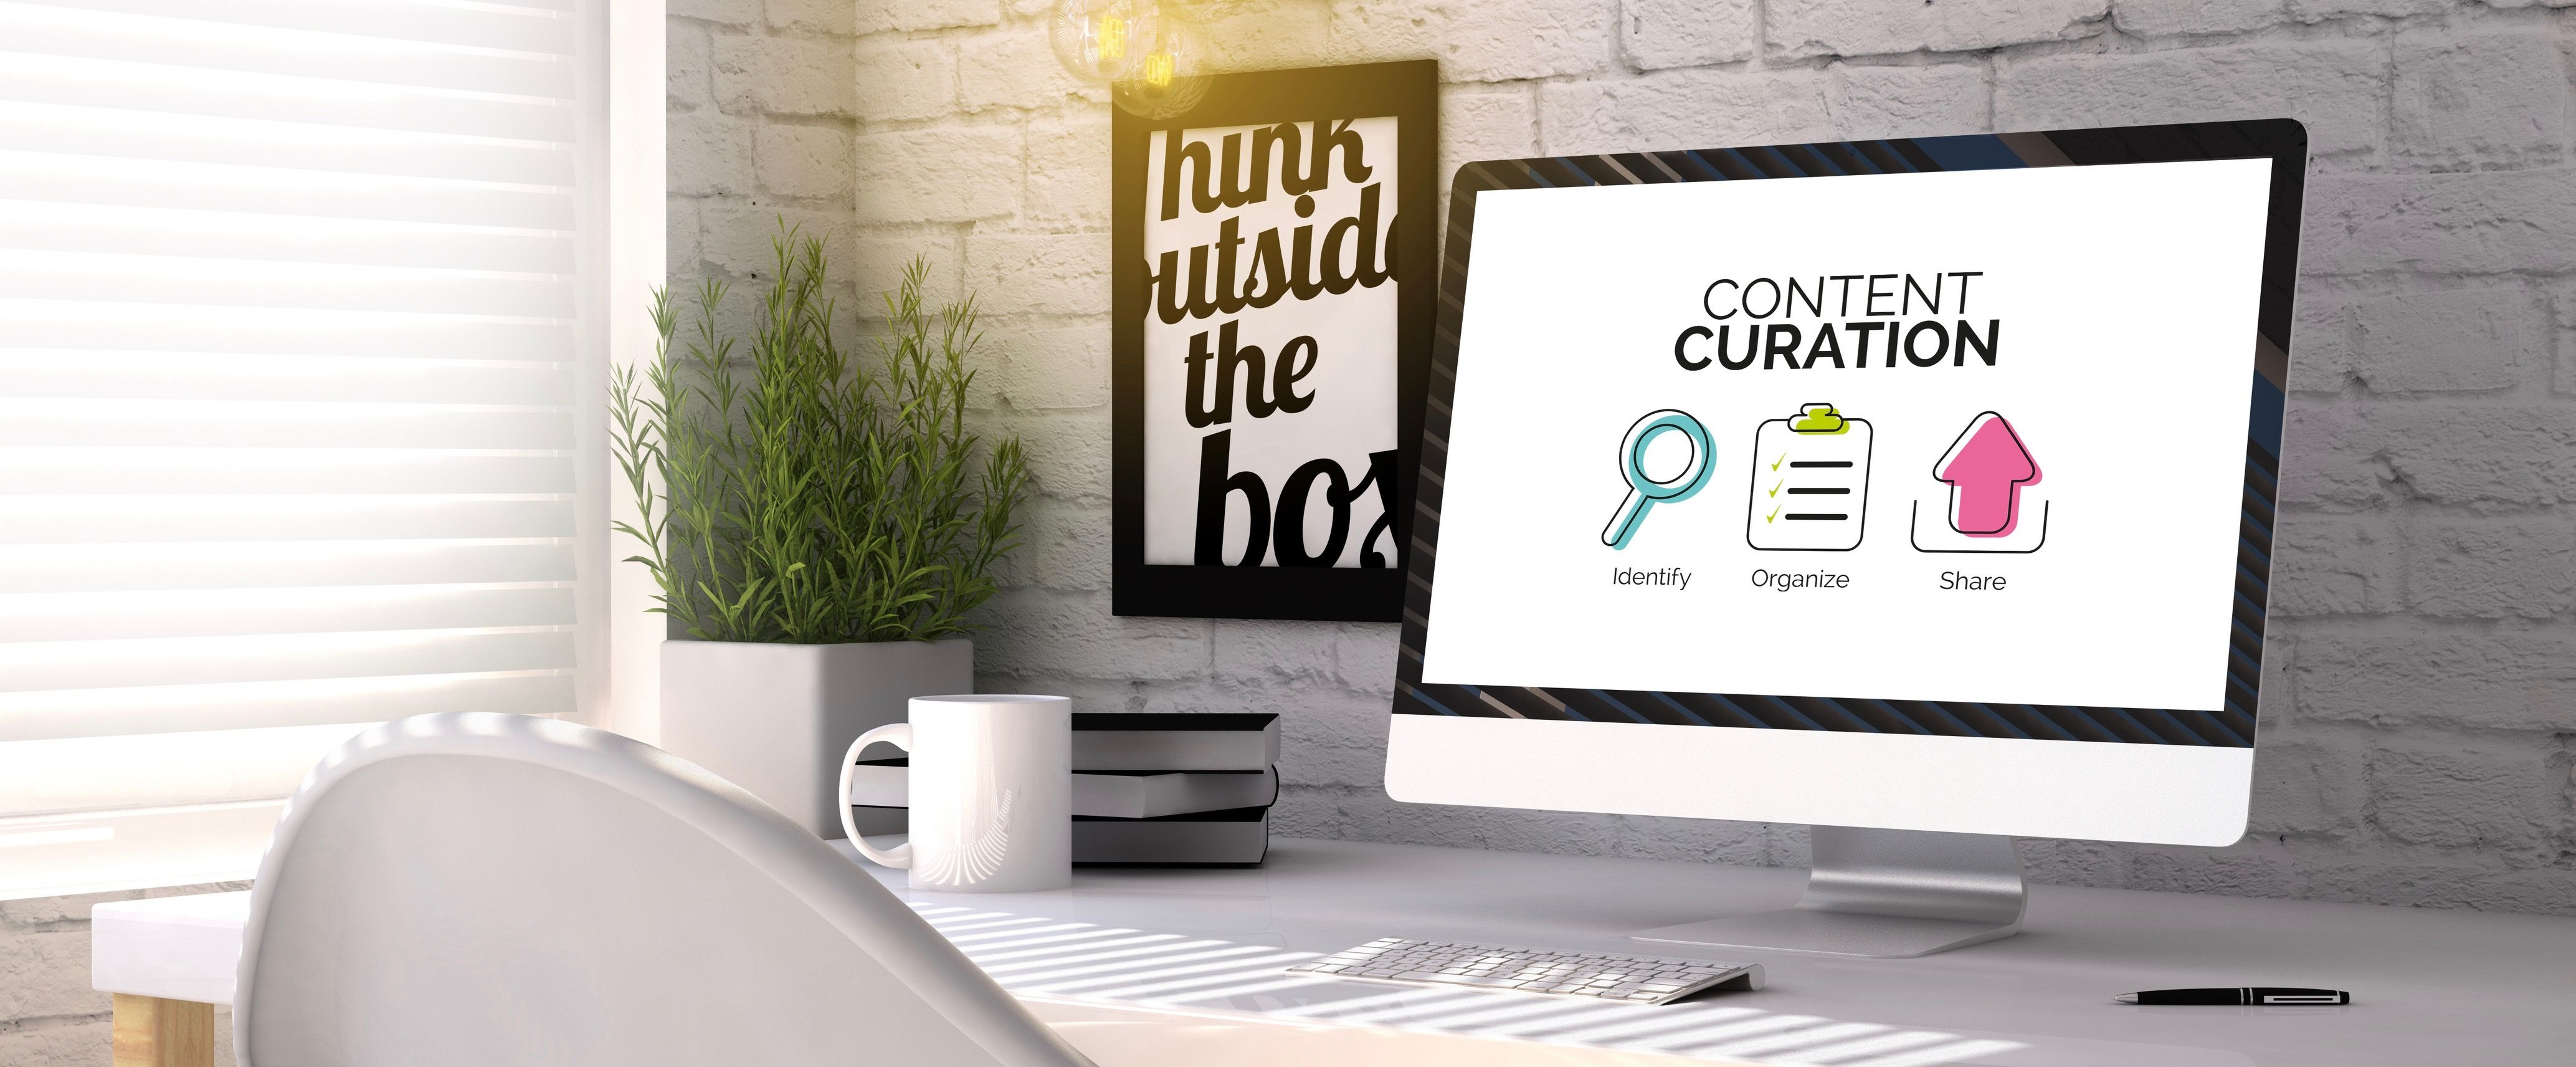 10 Content Curation Tools Every Marketer Needs